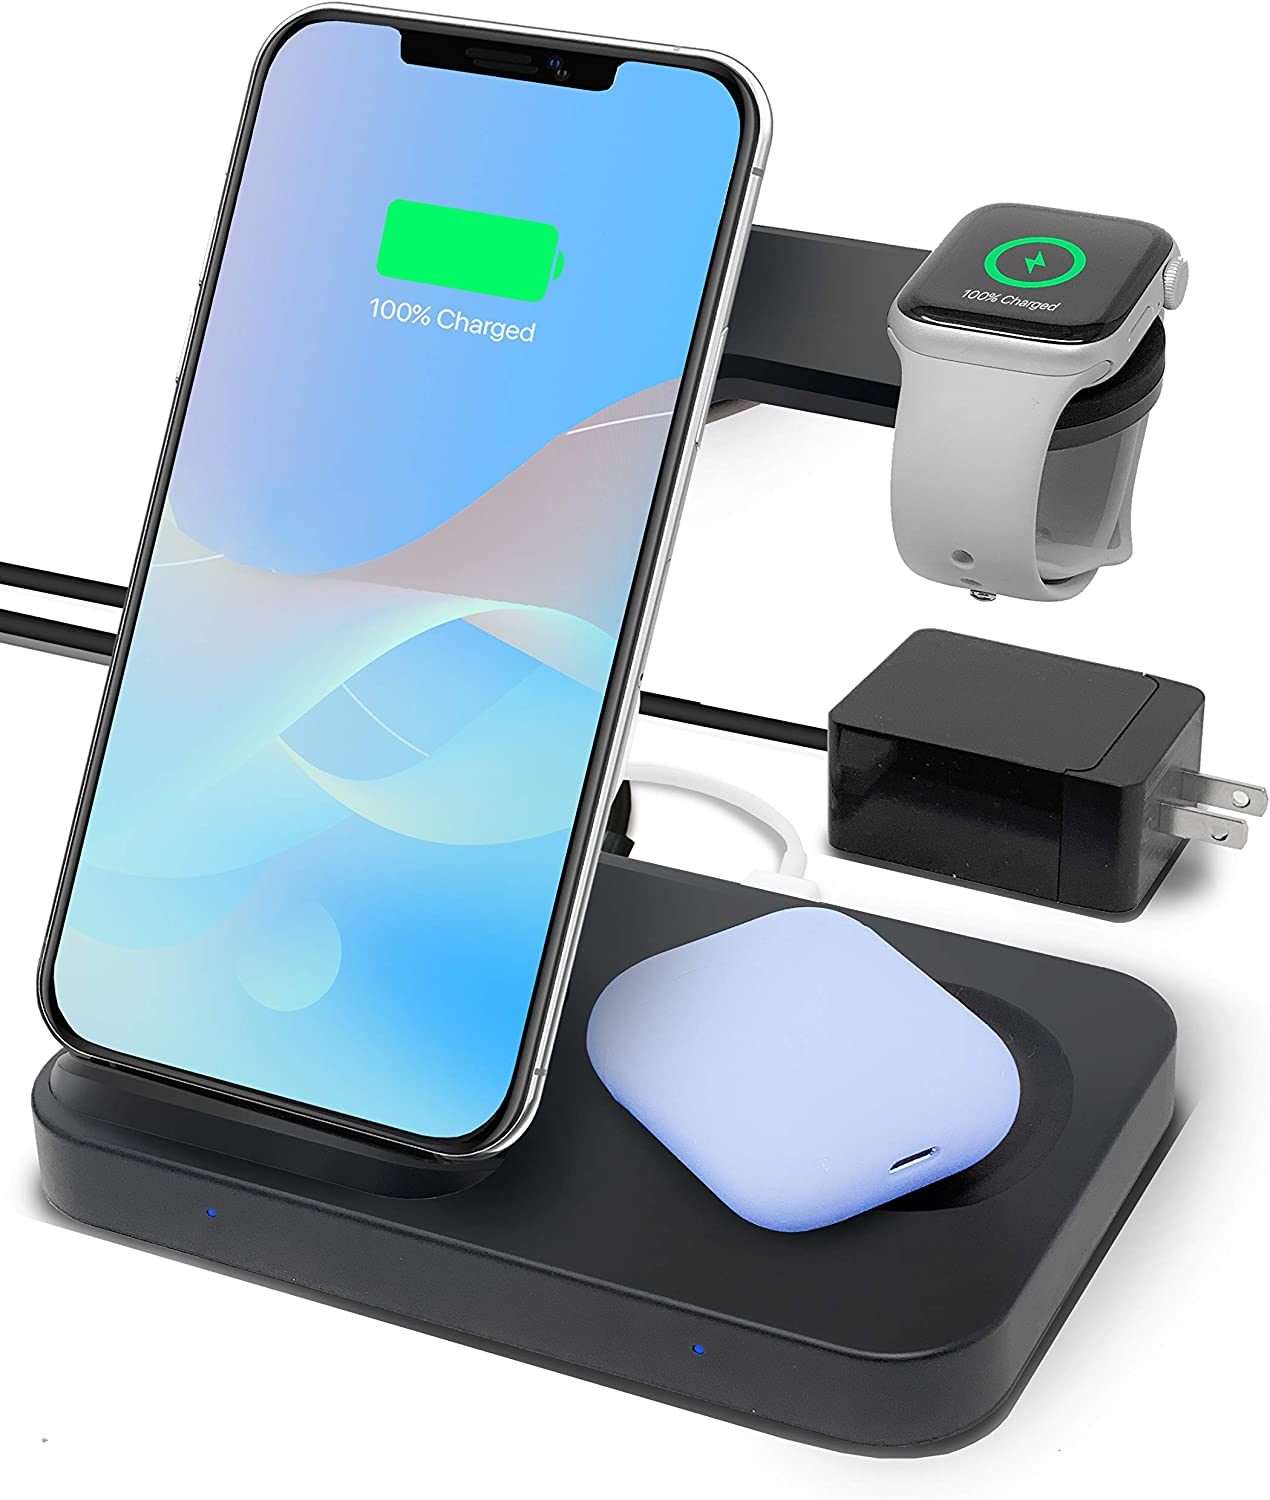 Amazon Com Ocommo 3 In 1 Qi Wireless Charging Station For Multiple Devices Airpods Samsung Watch Apple Watch 5 4 3 2 1 Android Phones Iphone 11 11 Pro 11 Max Pro Xs Max Xr Qc 3 0 Adapter Included